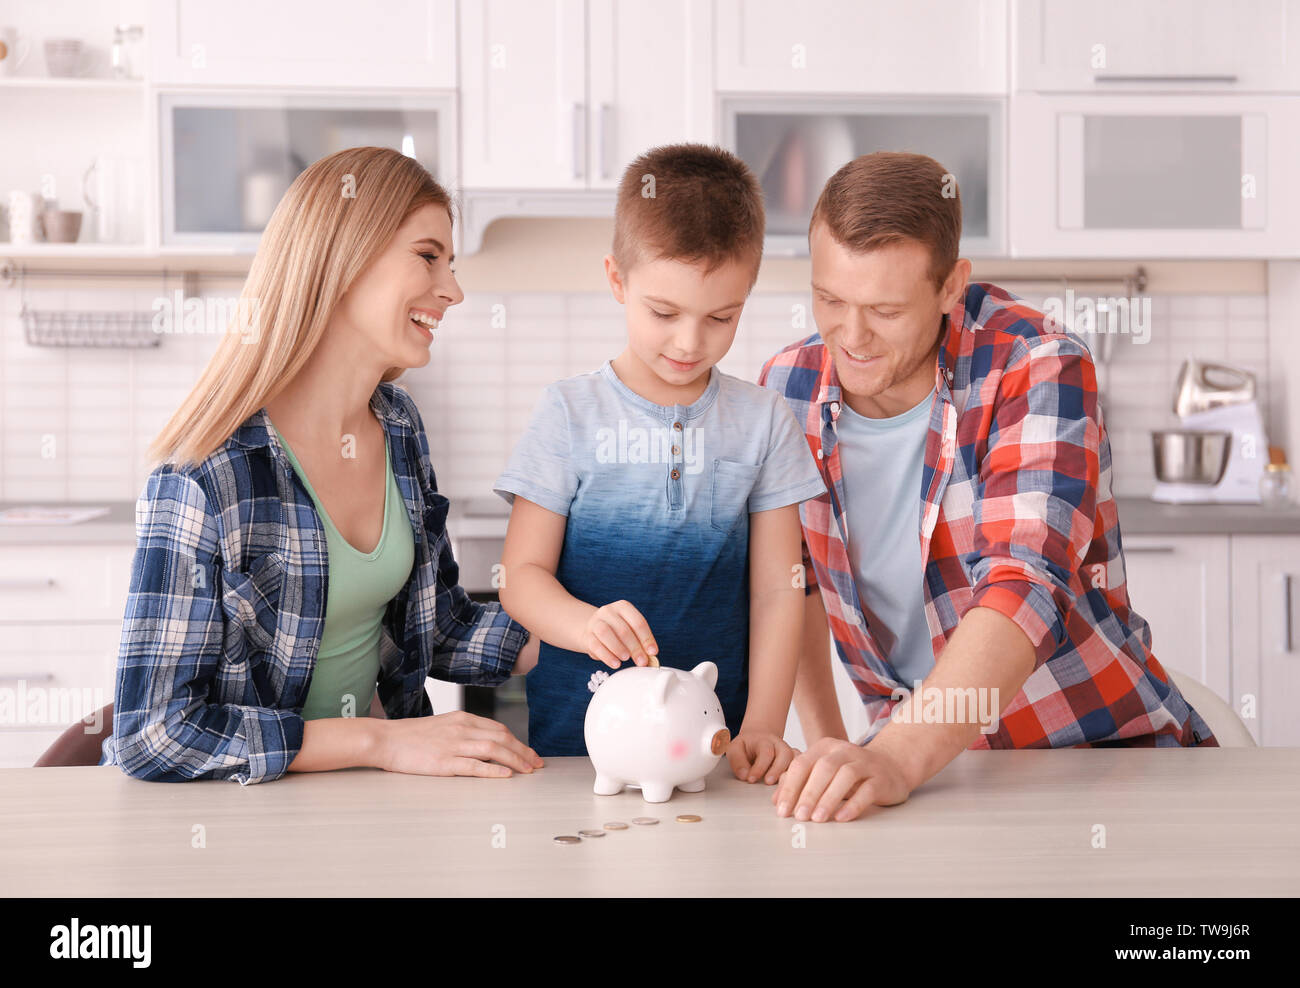 Happy family putting coin into piggy bank  at home - Stock Image